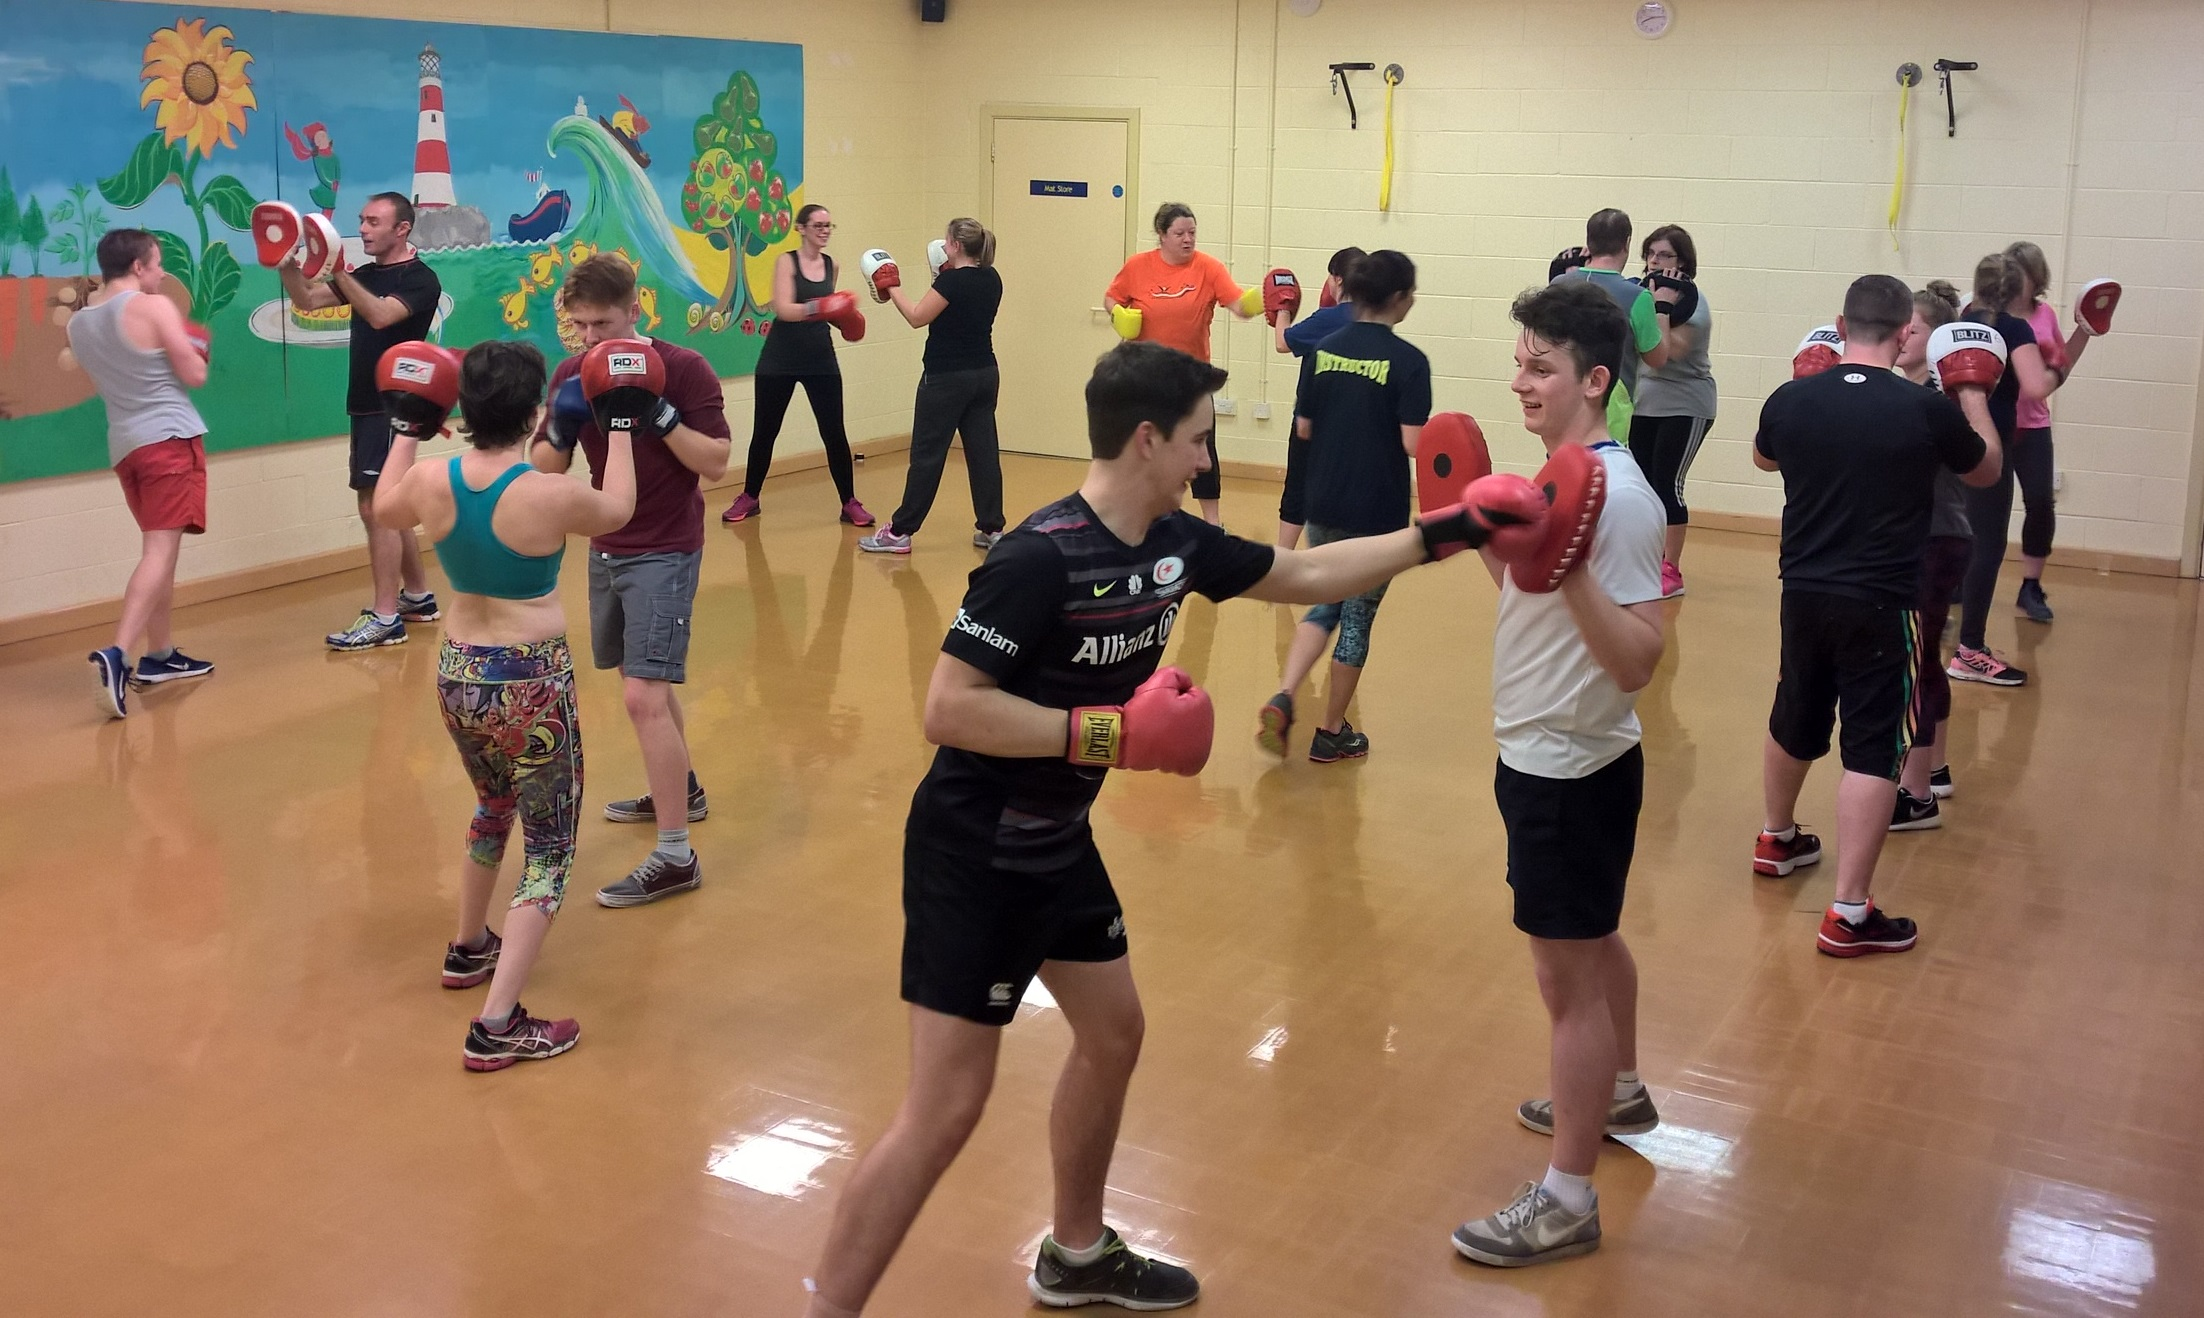 Boxercise - West Wight Sports and Community Centre